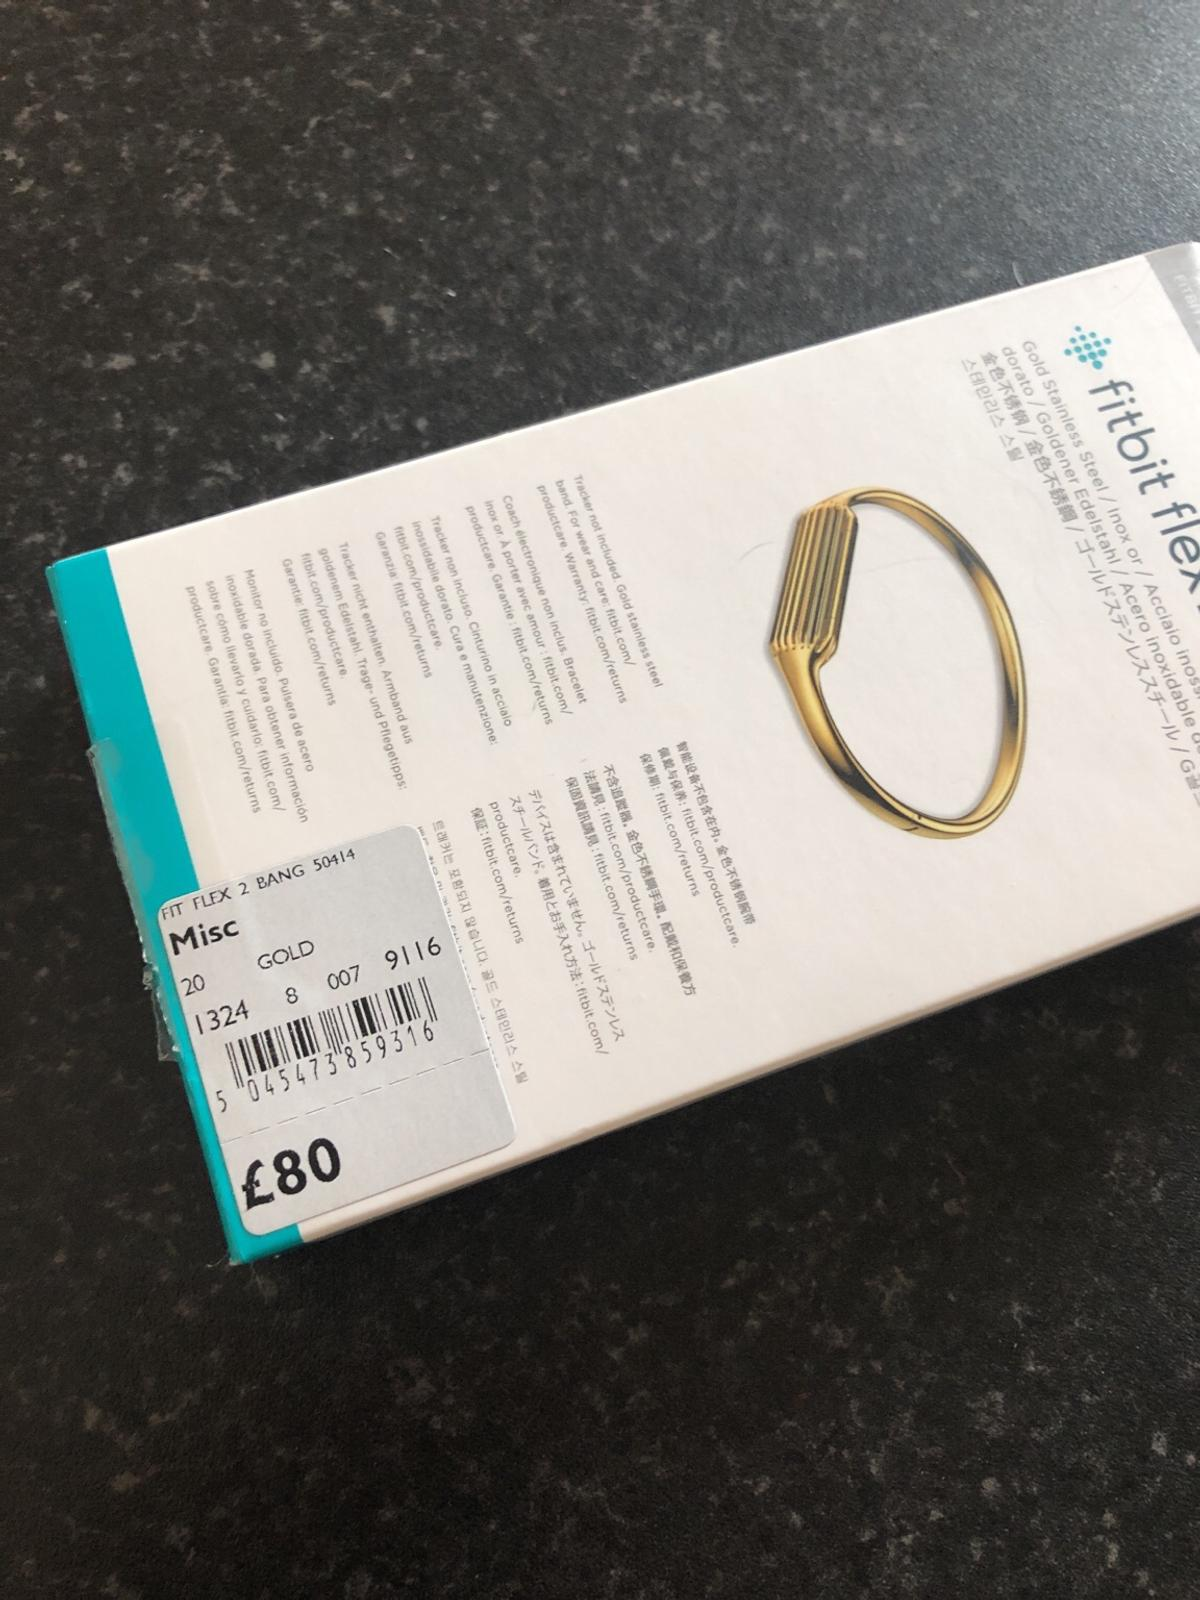 Fitbit Flex 2 in SG5 Hertfordshire for £20 00 for sale - Shpock